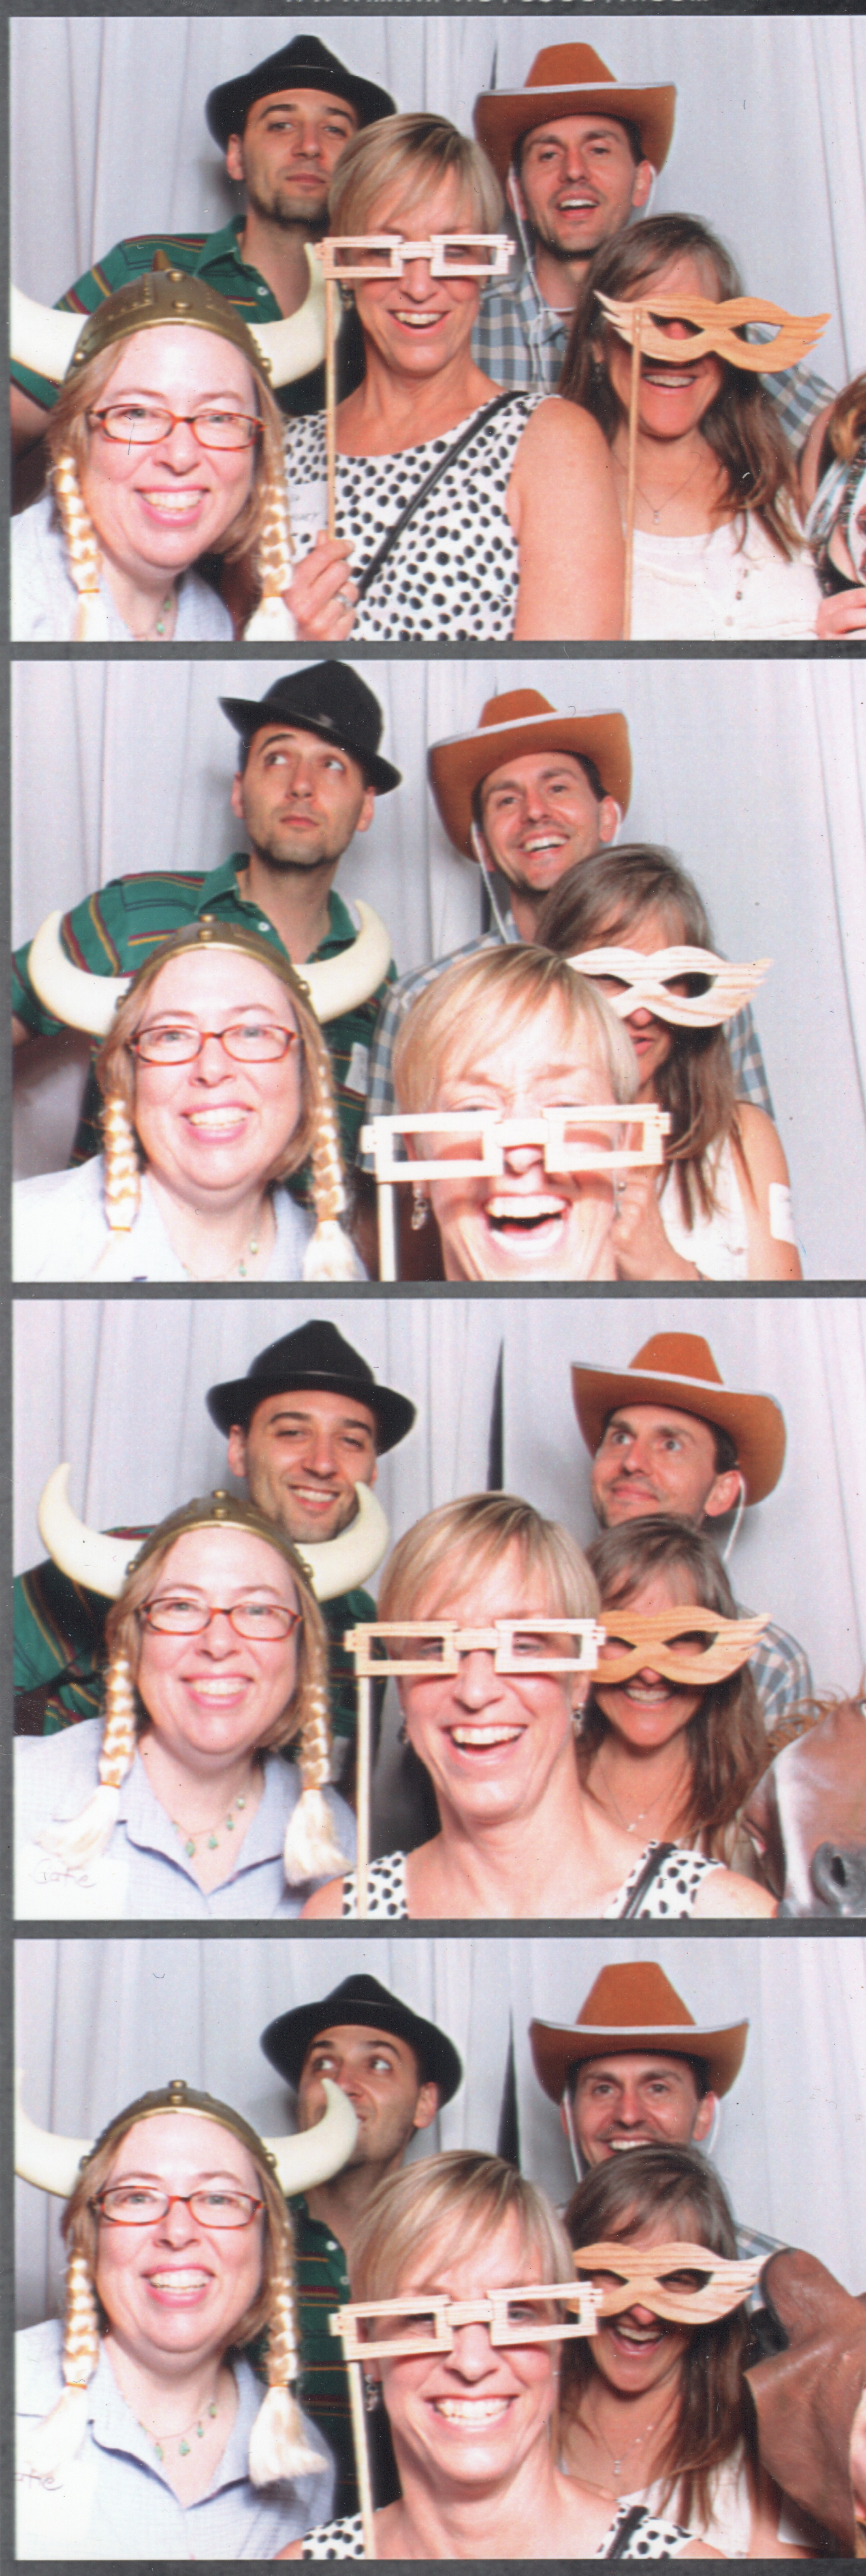 Clockwise: CS Peterson the Viking, Theodore McCombs in the black hat, Mark Springer in the cowboy hat, Christie Lips, fittingly, behind the lip-shaped glasses, Gemma Webster in the horse mask barely visible in the bottom right, and Lisa Mahoney behind rectangles.June 2016.